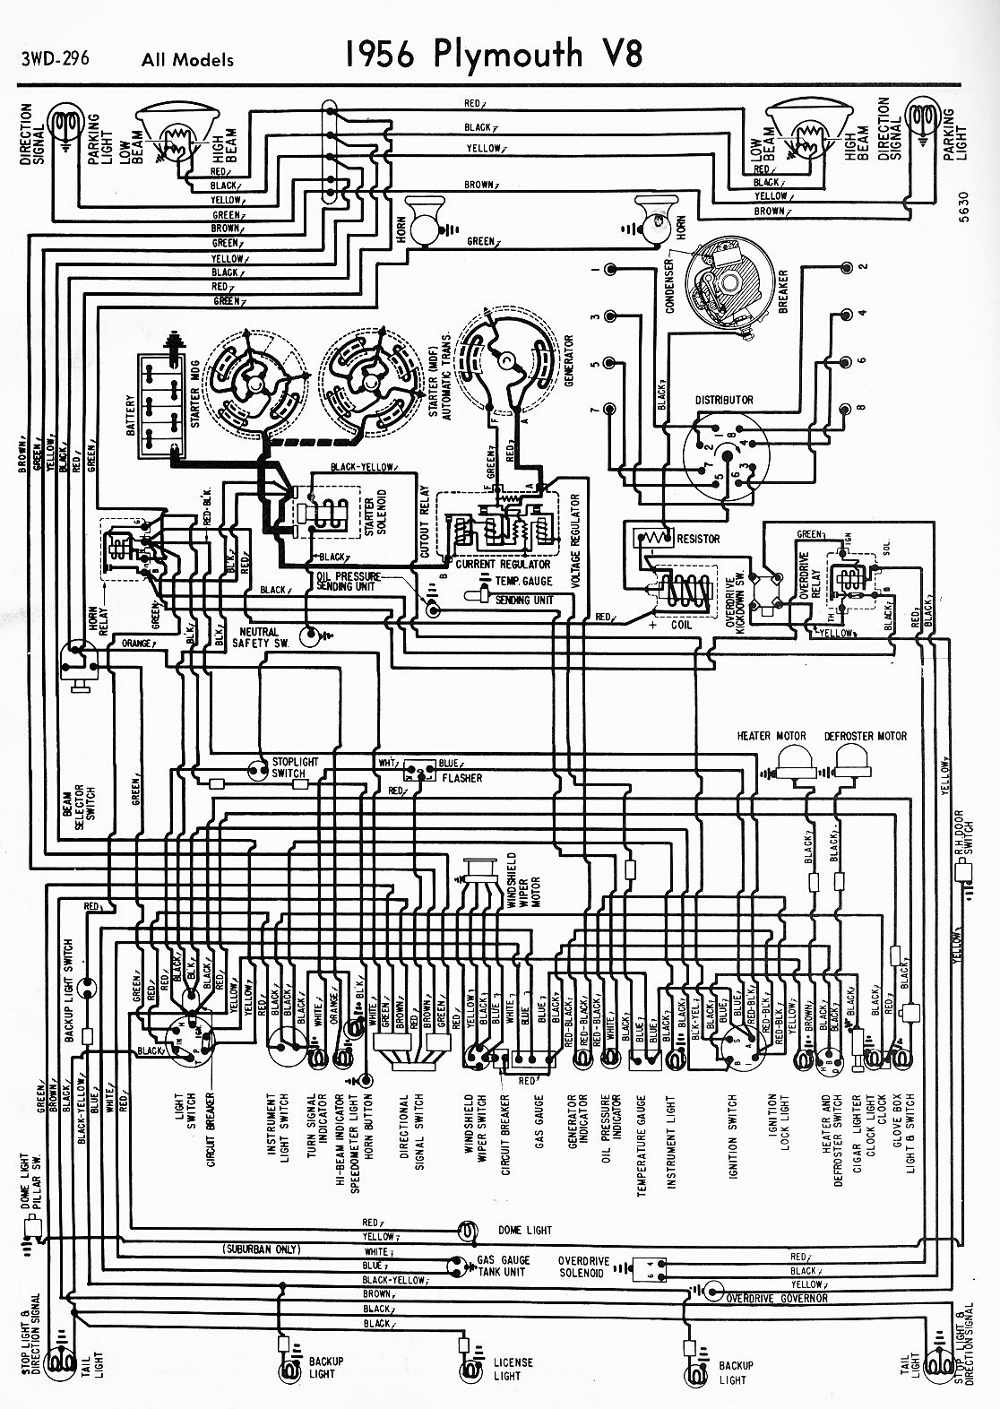 Ford Car Wiring Pictures To Pin On Pinterest PinsDaddy - 1953 mercury wiring diagram